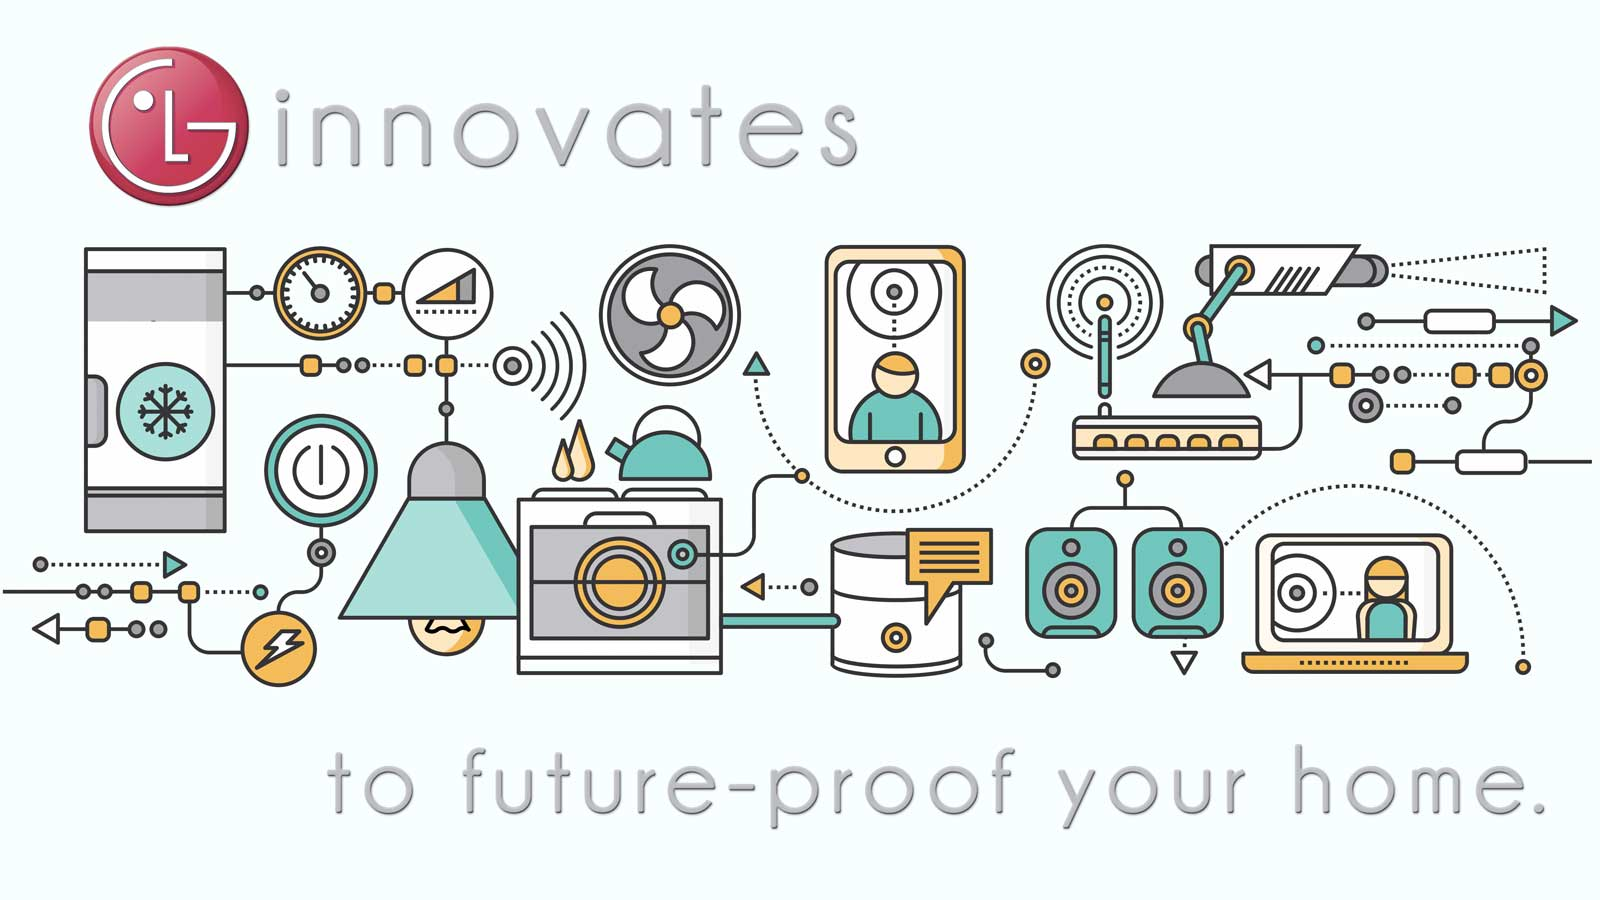 The many ways LG innovates IoT to future-proof your home